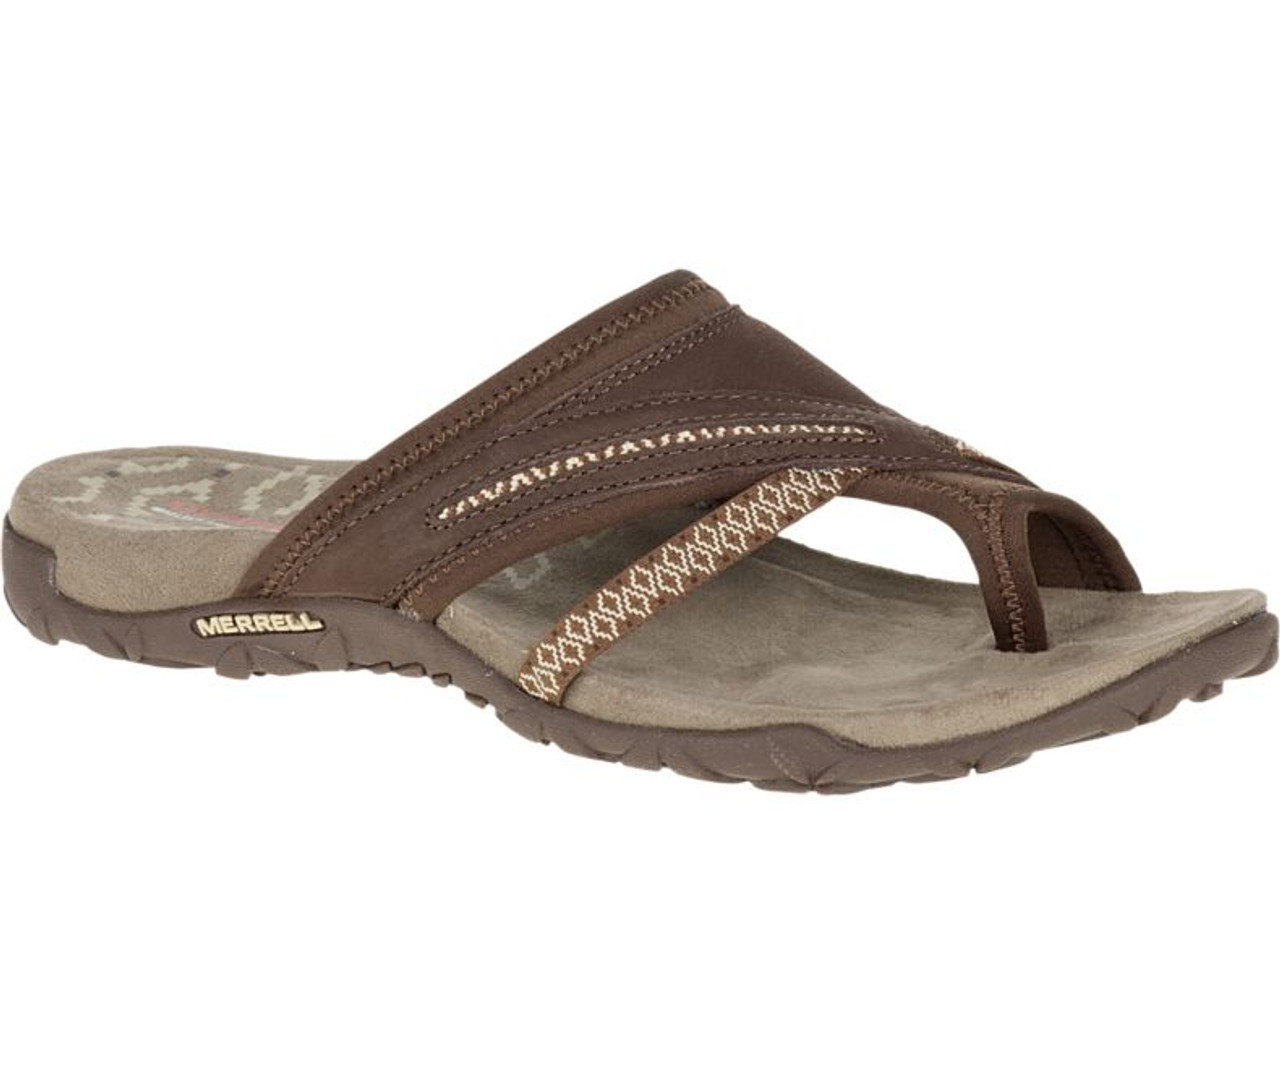 45fd8db2c432 Women s Merrell Terran Post II Sandal - Herbert s Boots and Western Wear